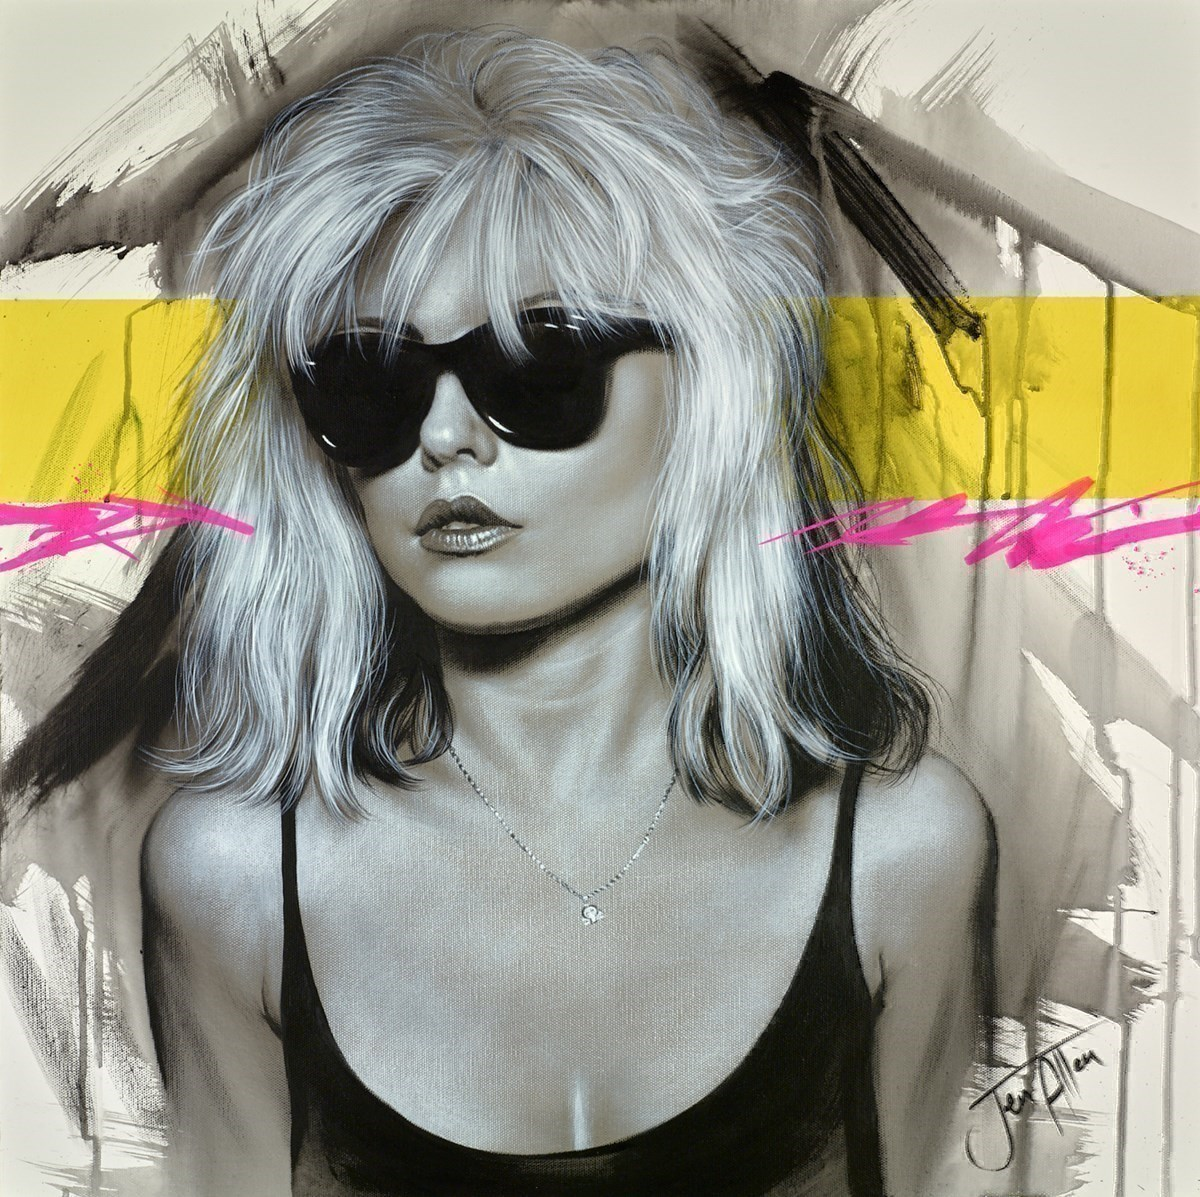 Blondie Parallel Lines by Jen Allen -  sized 24x24 inches. Available from Whitewall Galleries